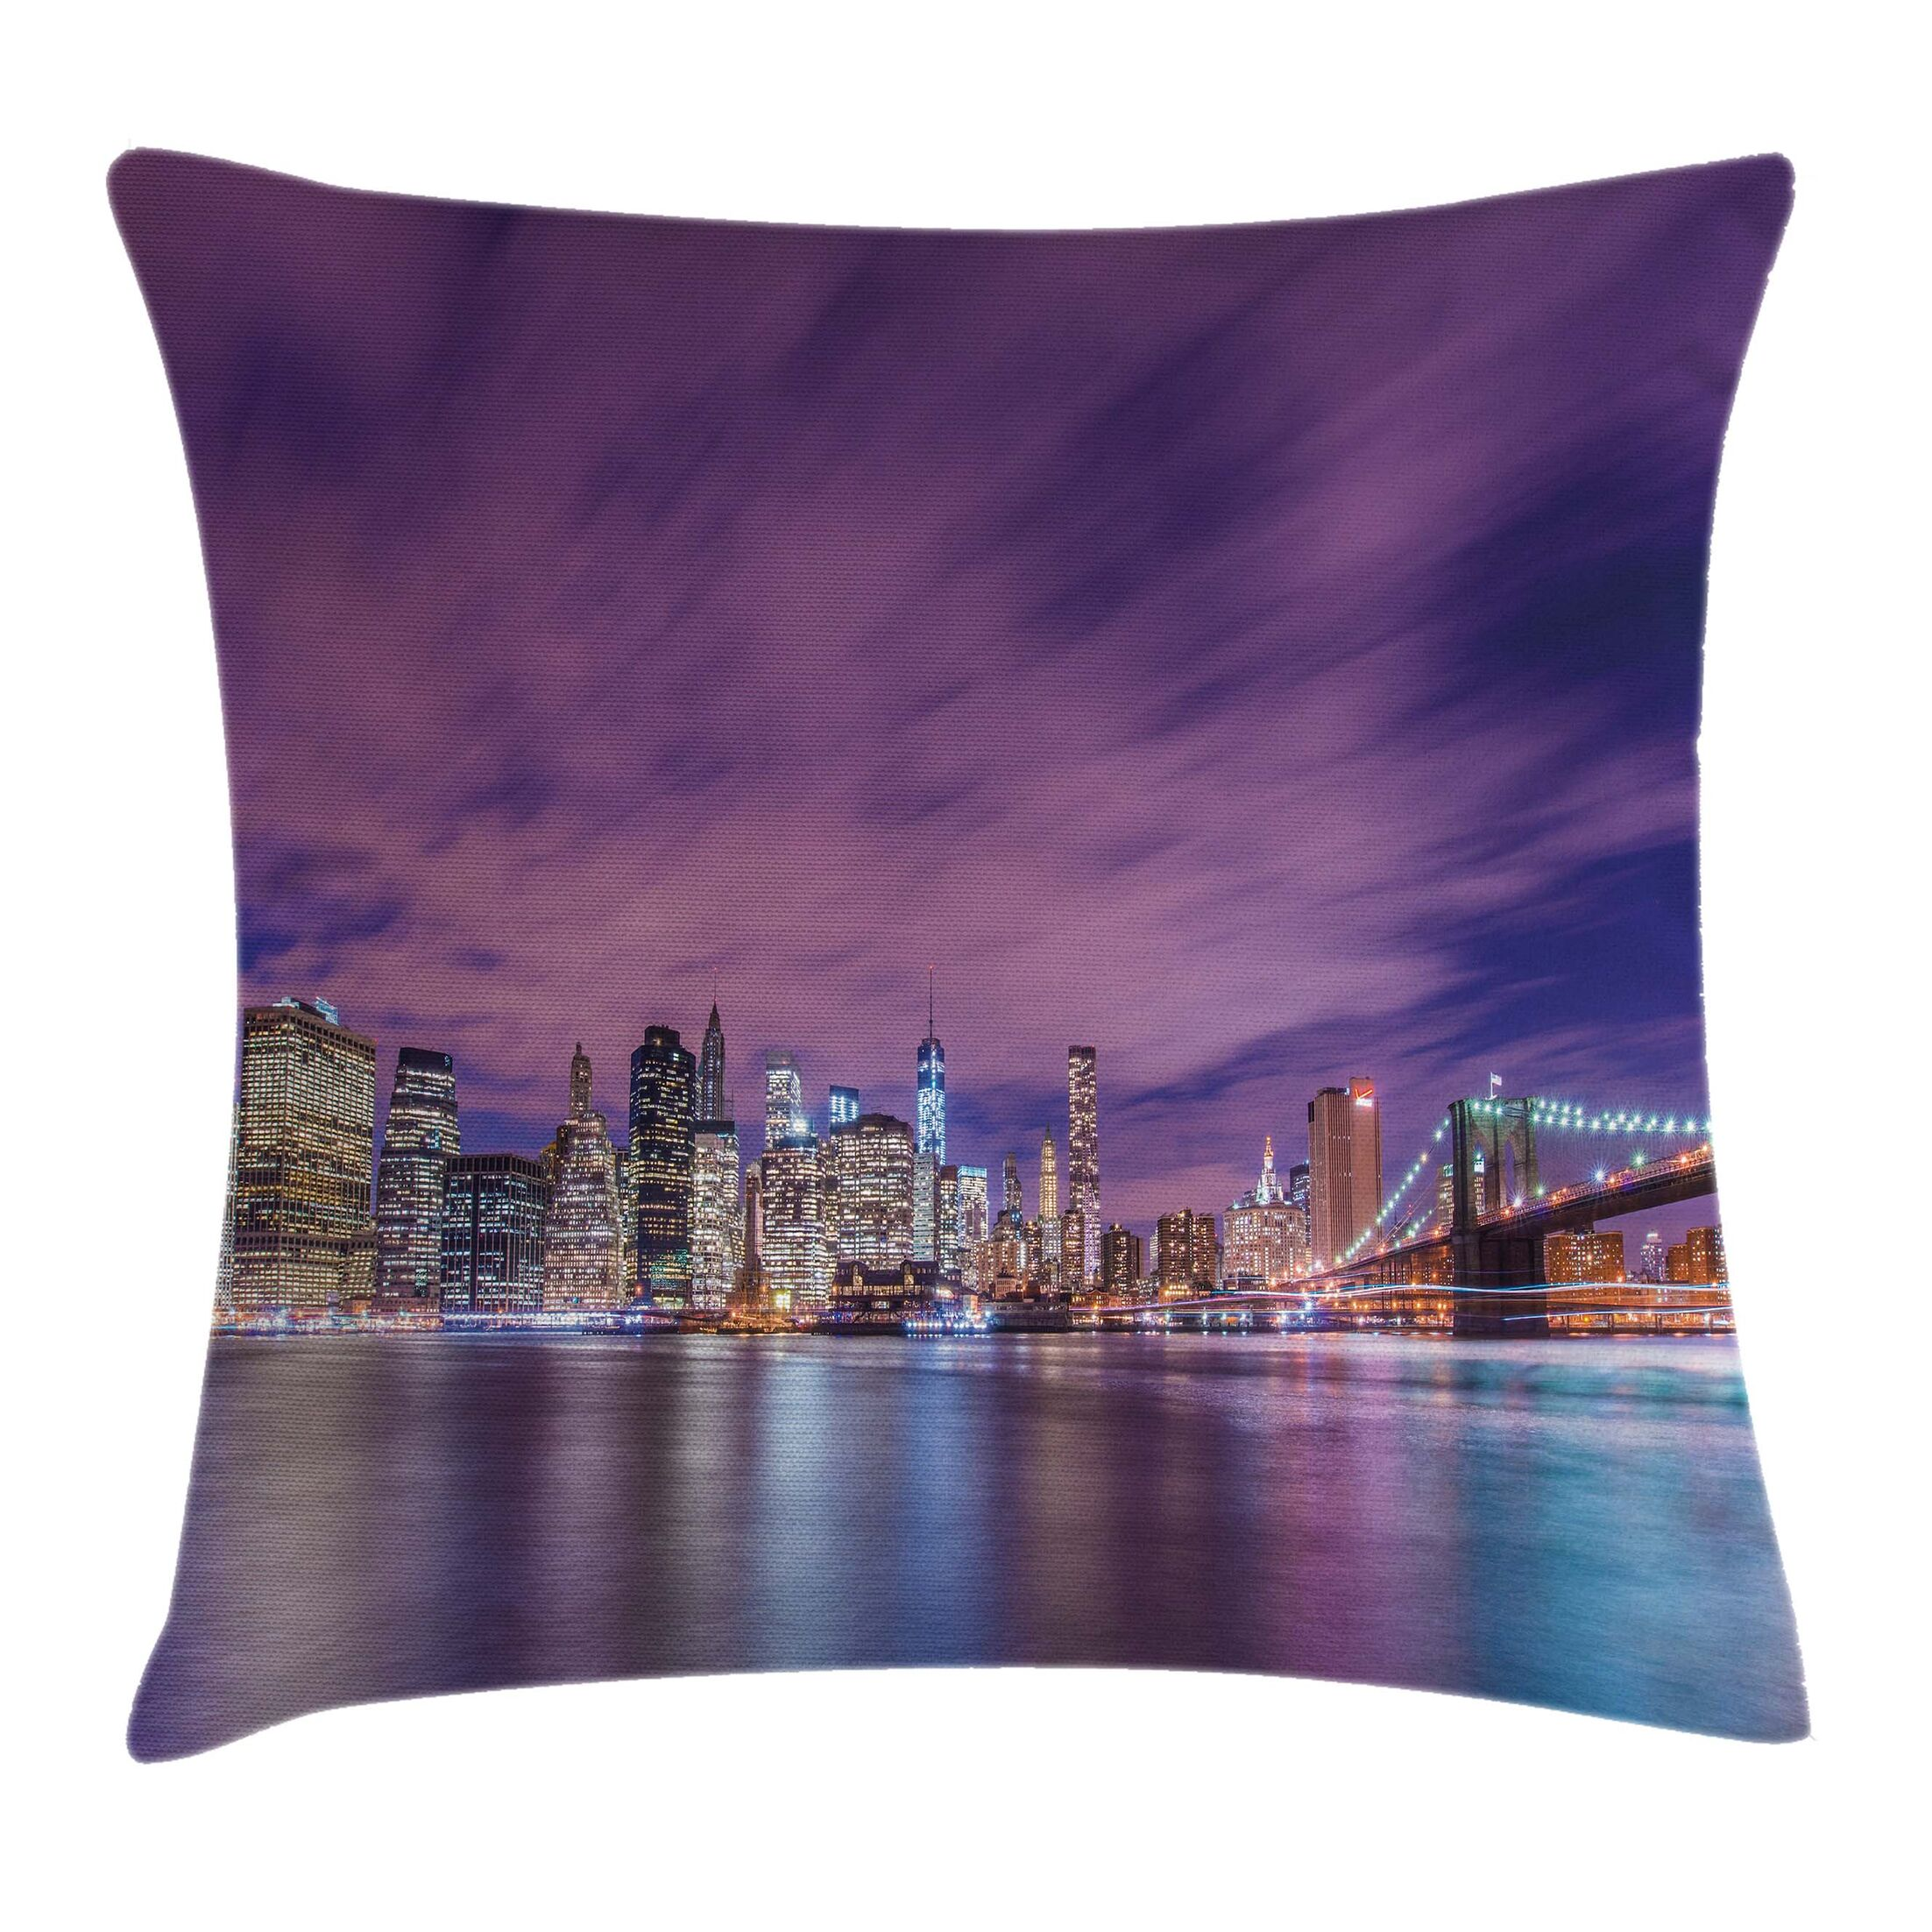 New York City Skyline Square Pillow Cover Size: 16